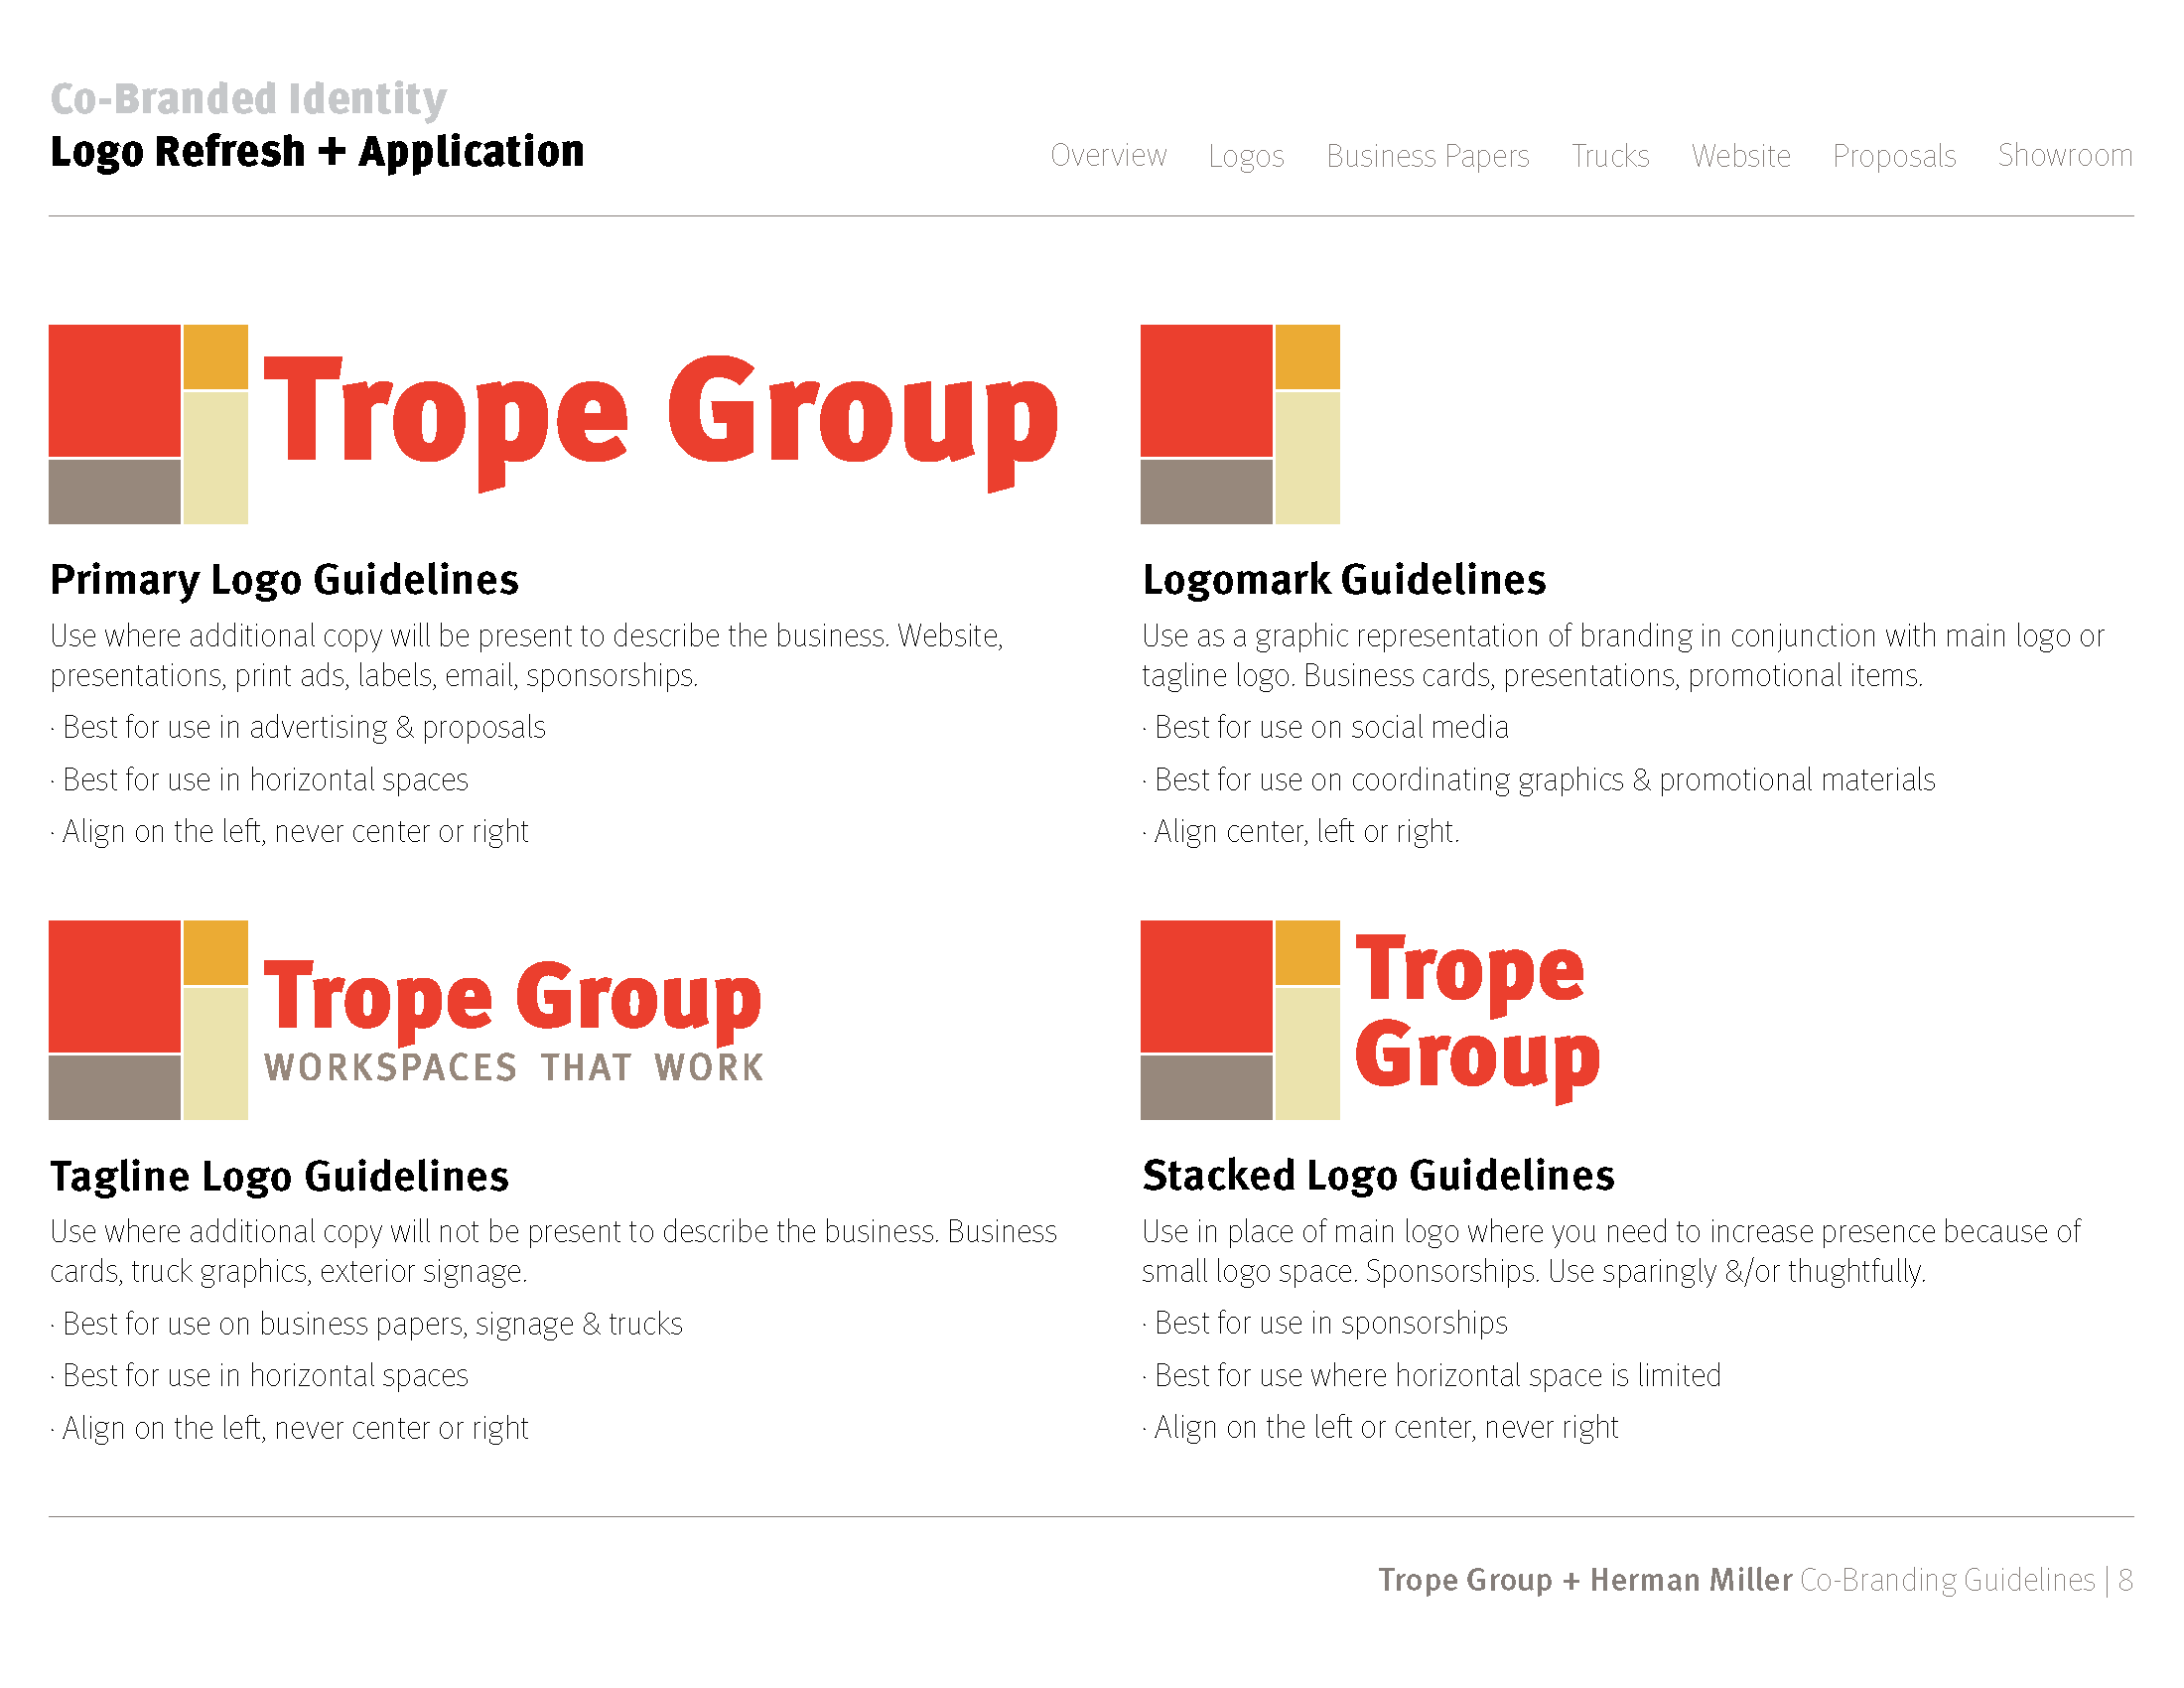 TG_HMICoBranding__Page_08.png